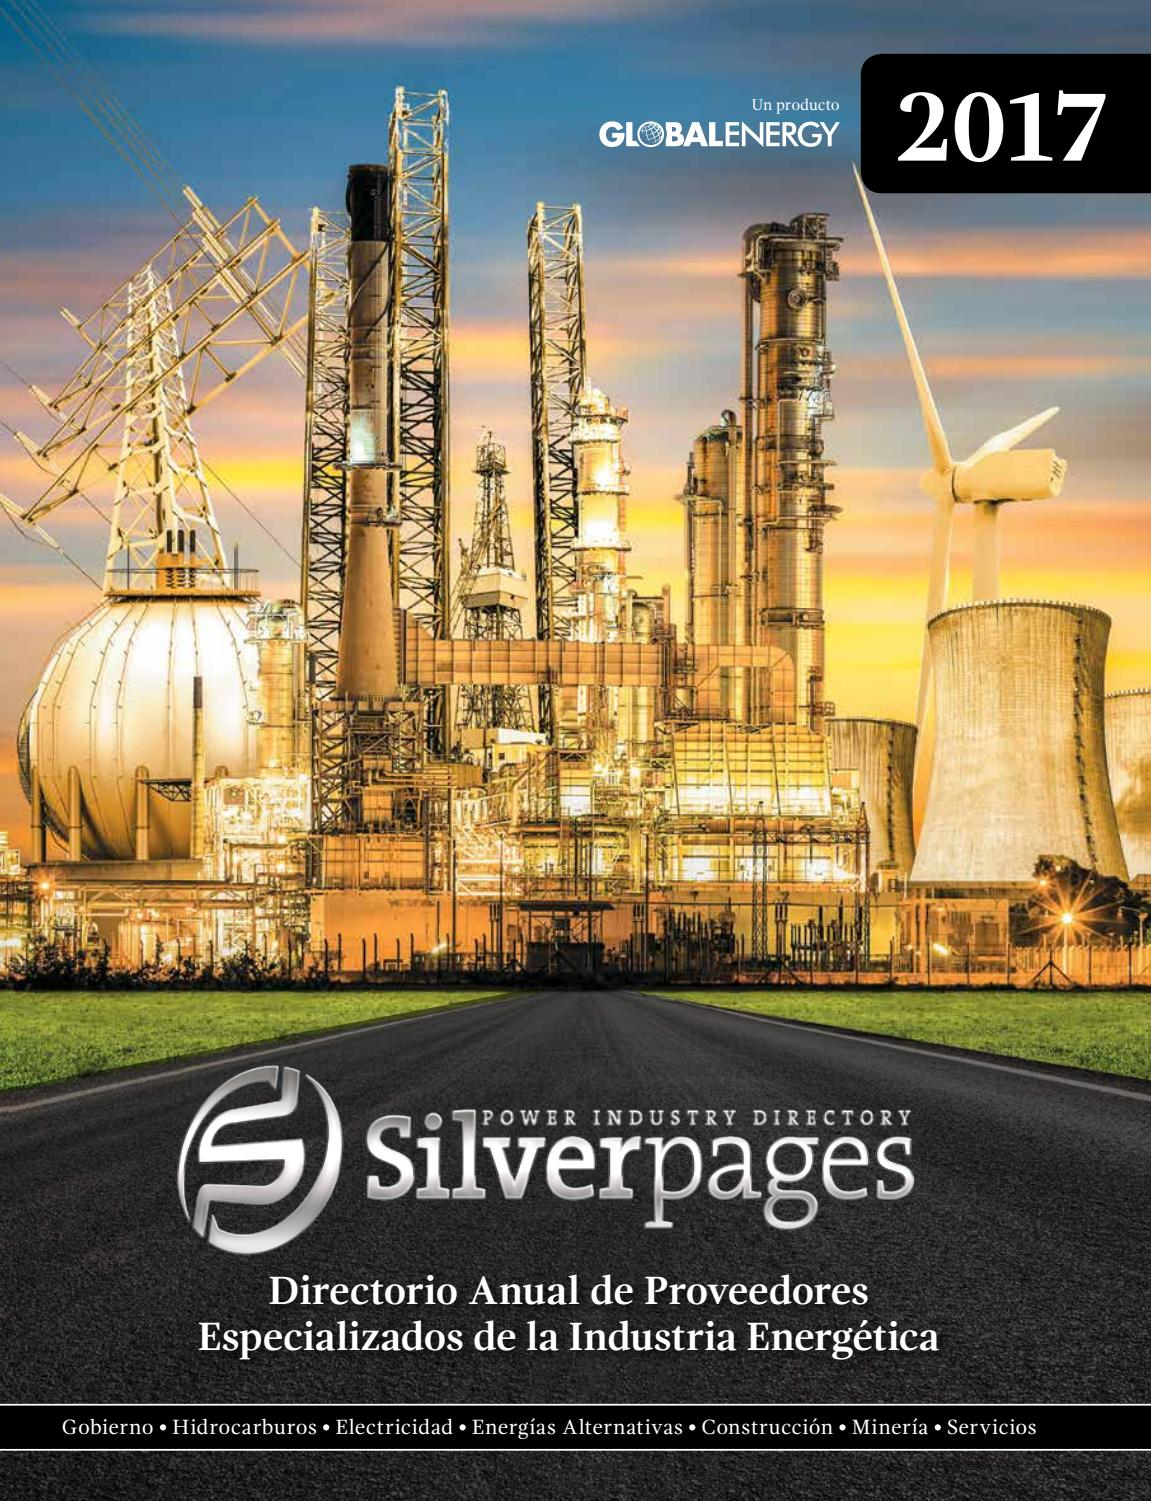 Silver pages 2017 by Global Energy México - issuu